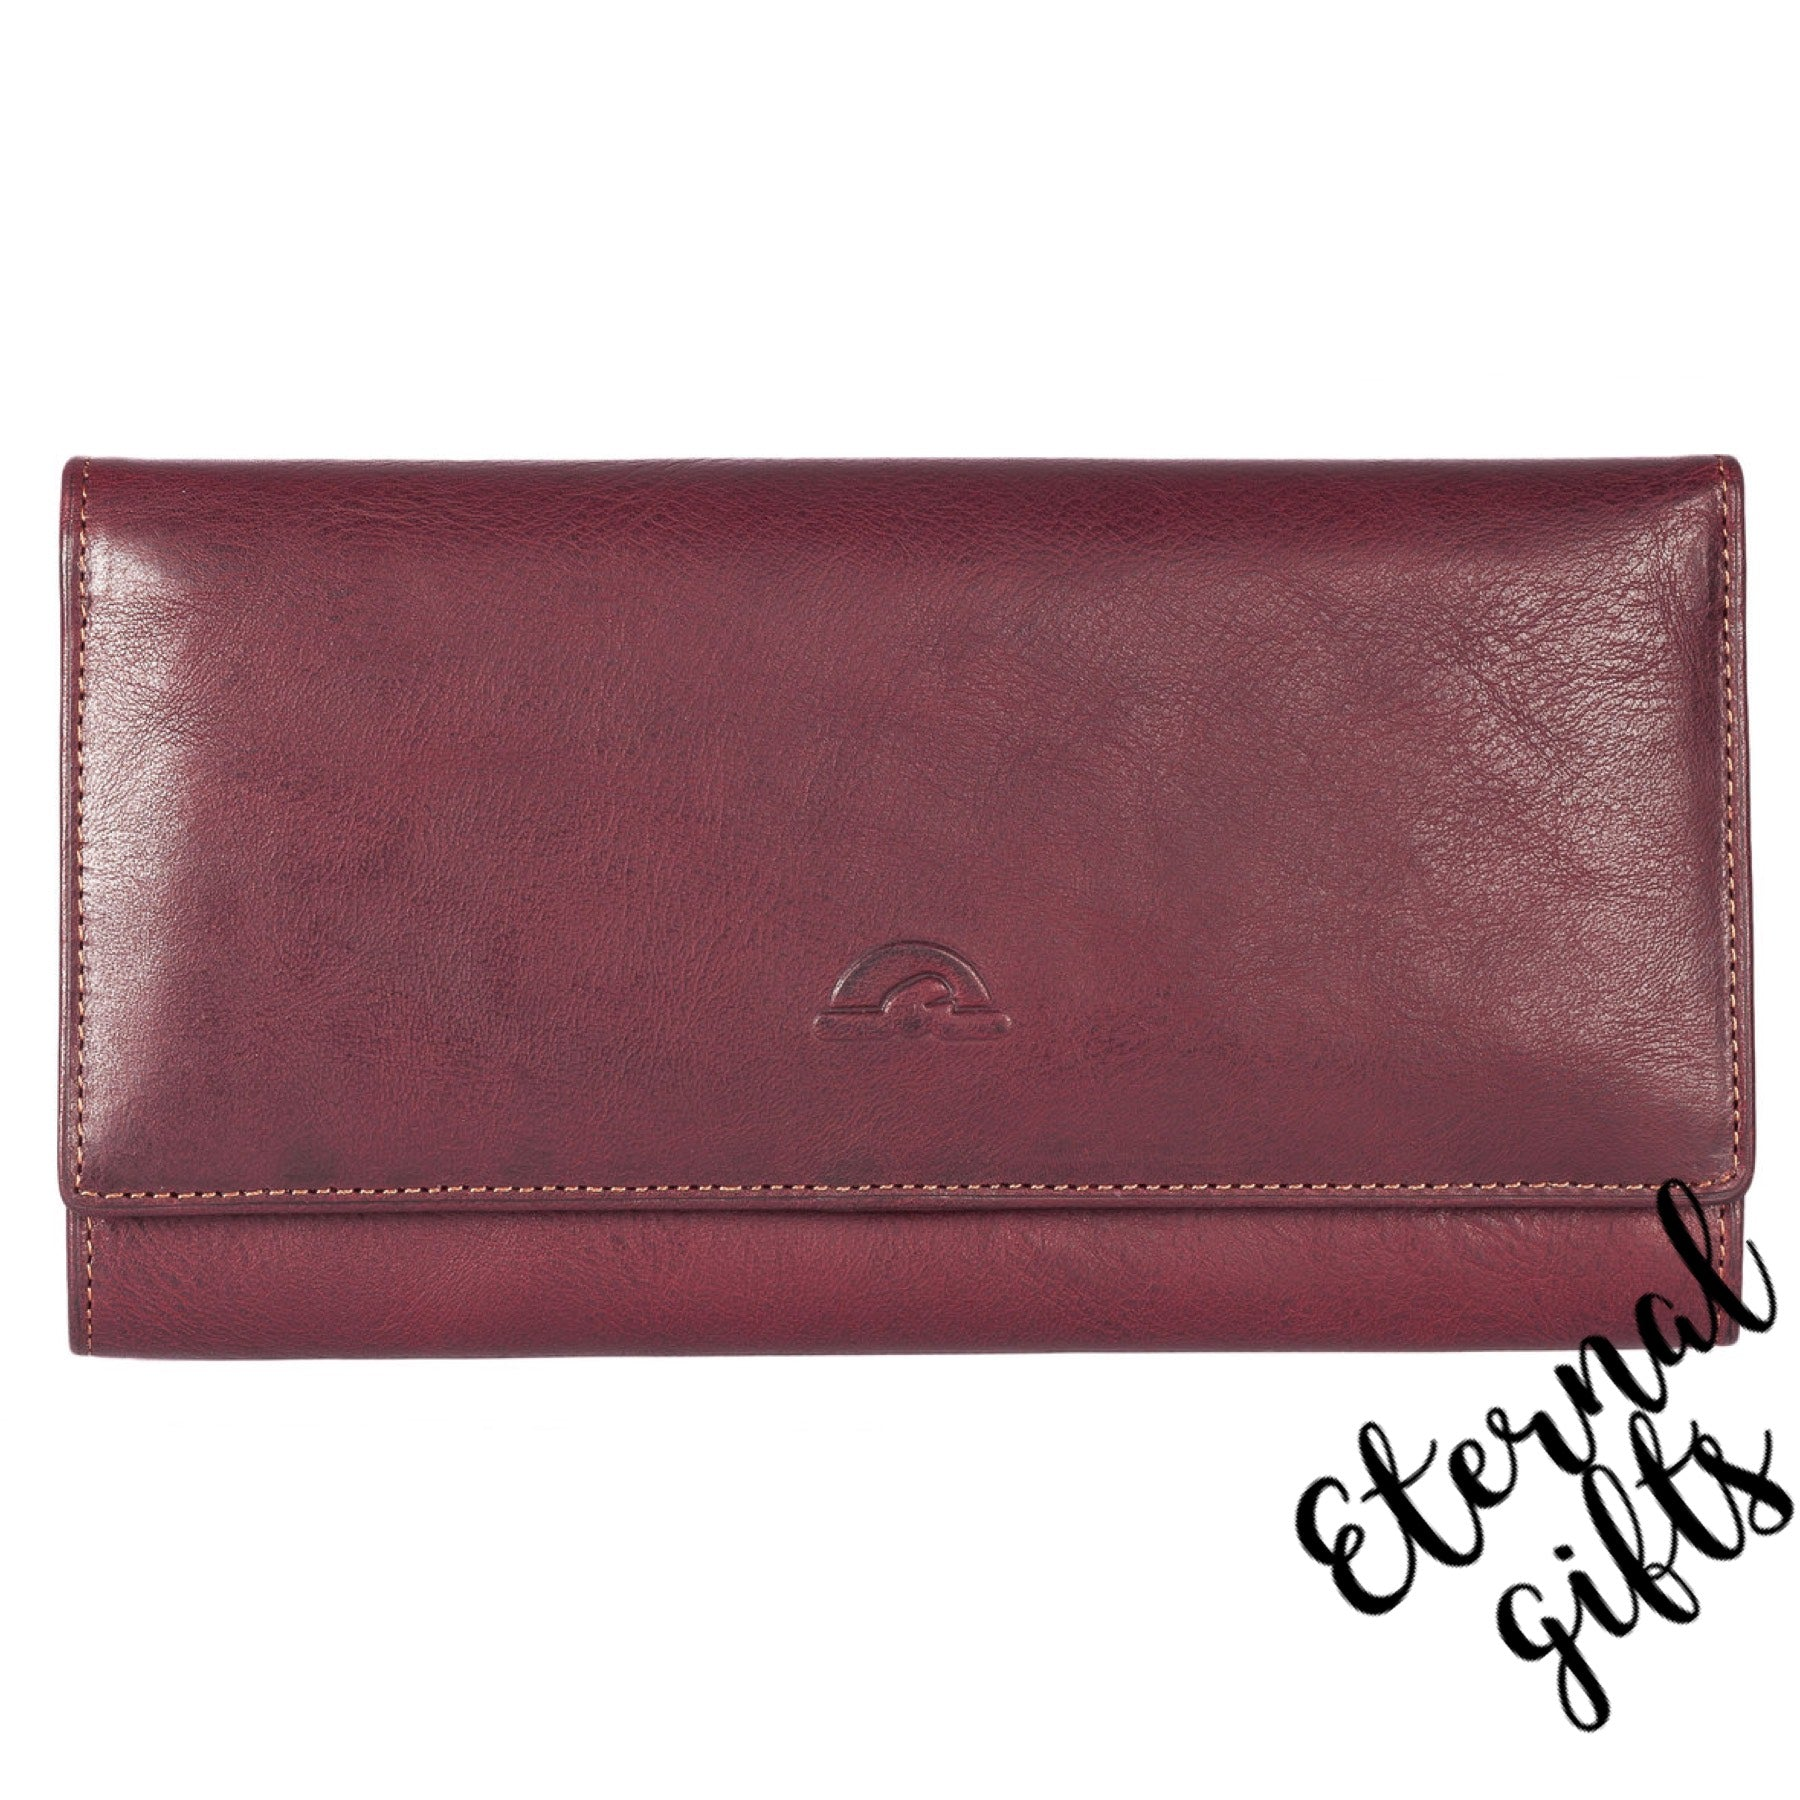 Italian Leather large flap over purse by Tony Perotti. Plum